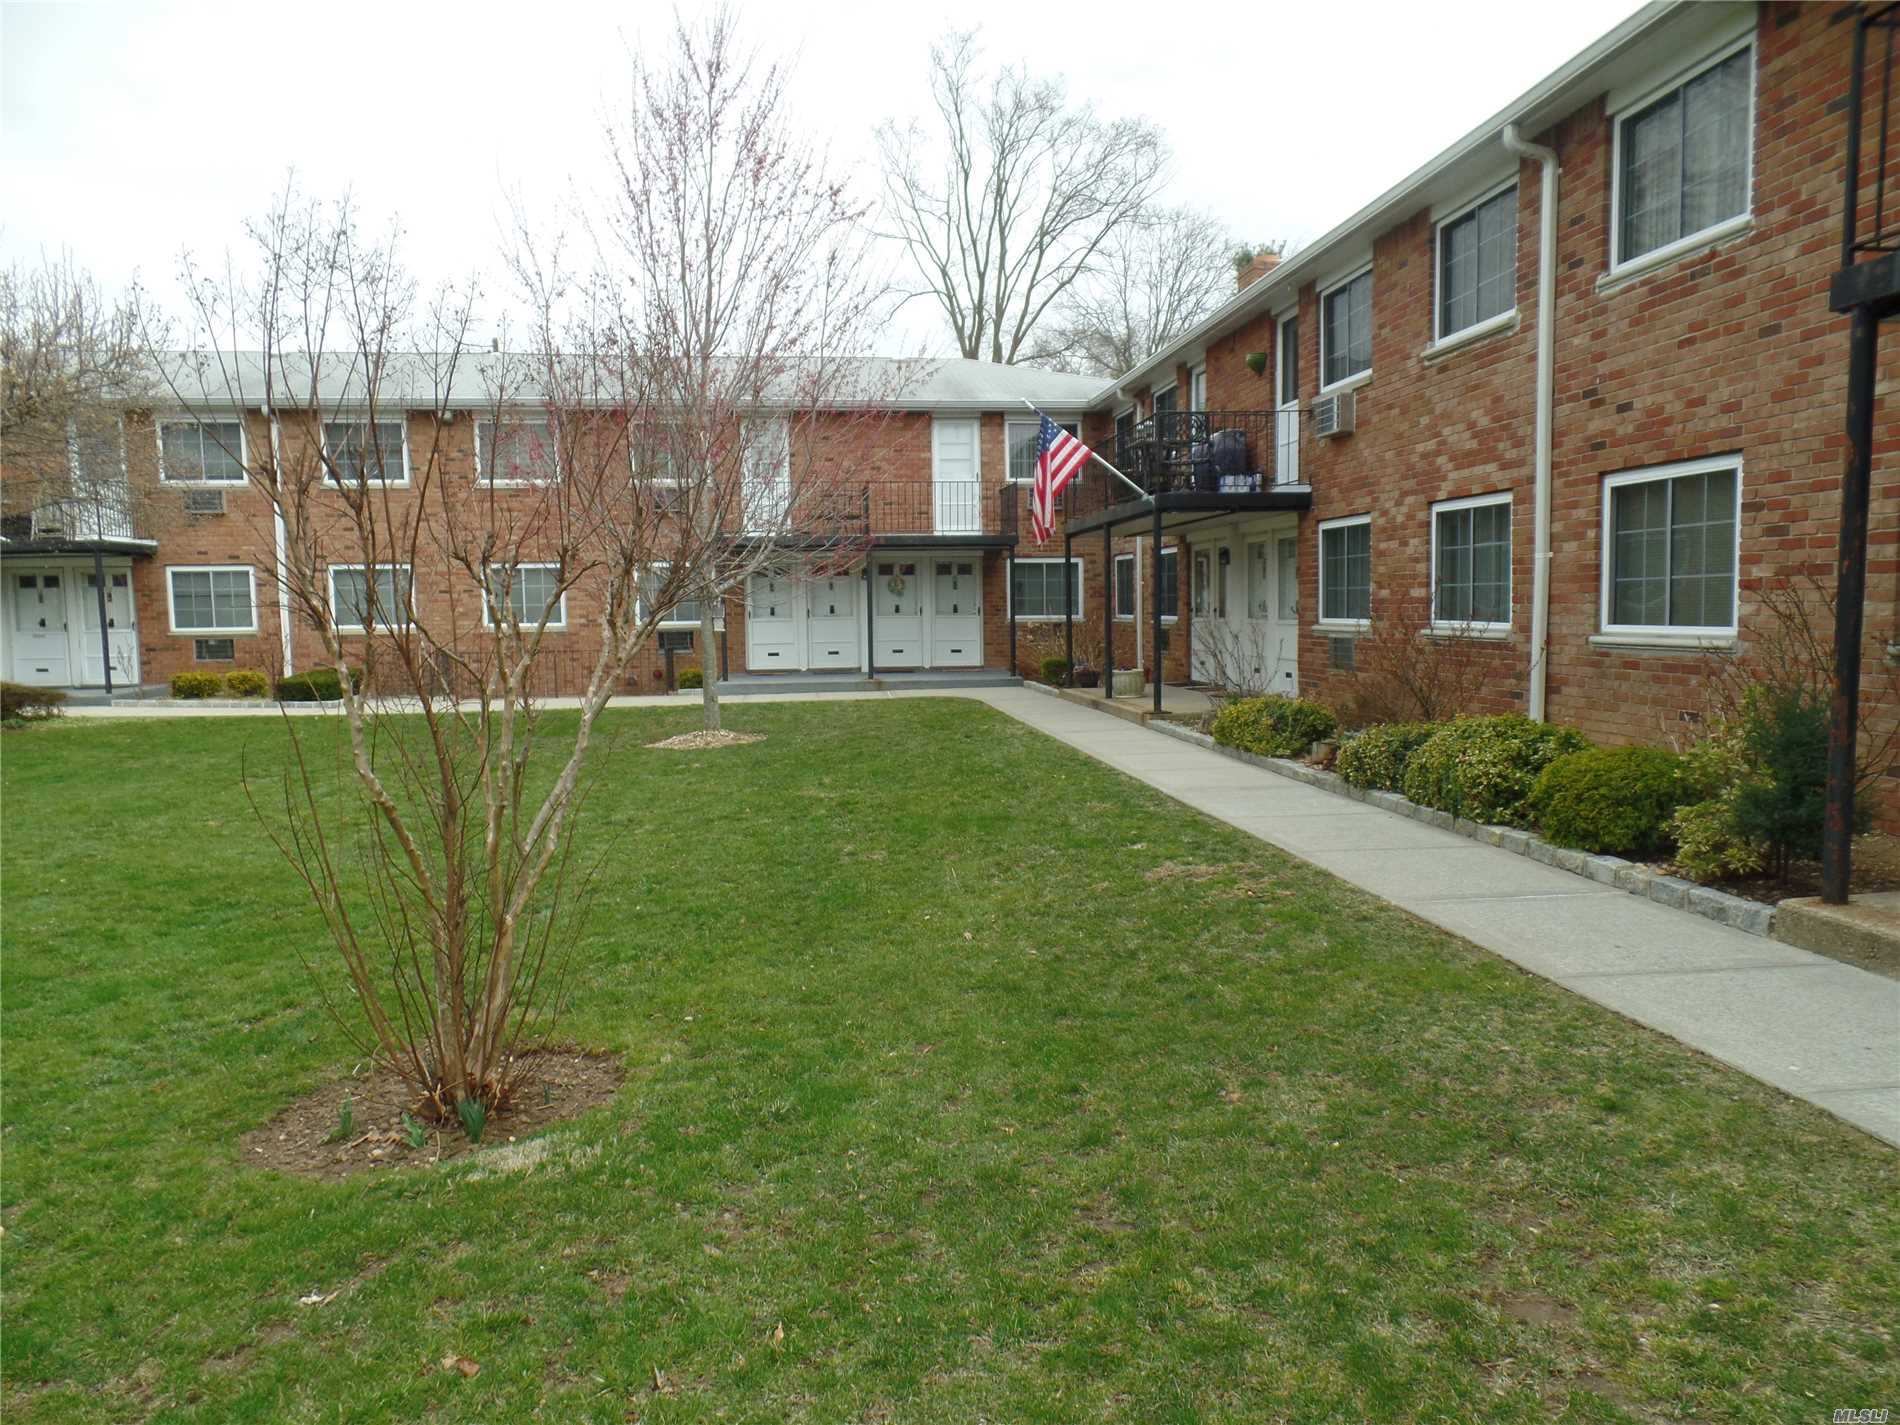 LOCATION!! Large 1 bedroom located in HHH school District. Open Floor Plan; Lots closet; private entrance . Beautifully landscaped grounds in lovely community with picnic/grill area; Maint includes heating, taxes, gas cooking, parking;  Star not reflected in Maint; Walkable to LIRR, Bethpage State Park & trails and Farmingdale Village